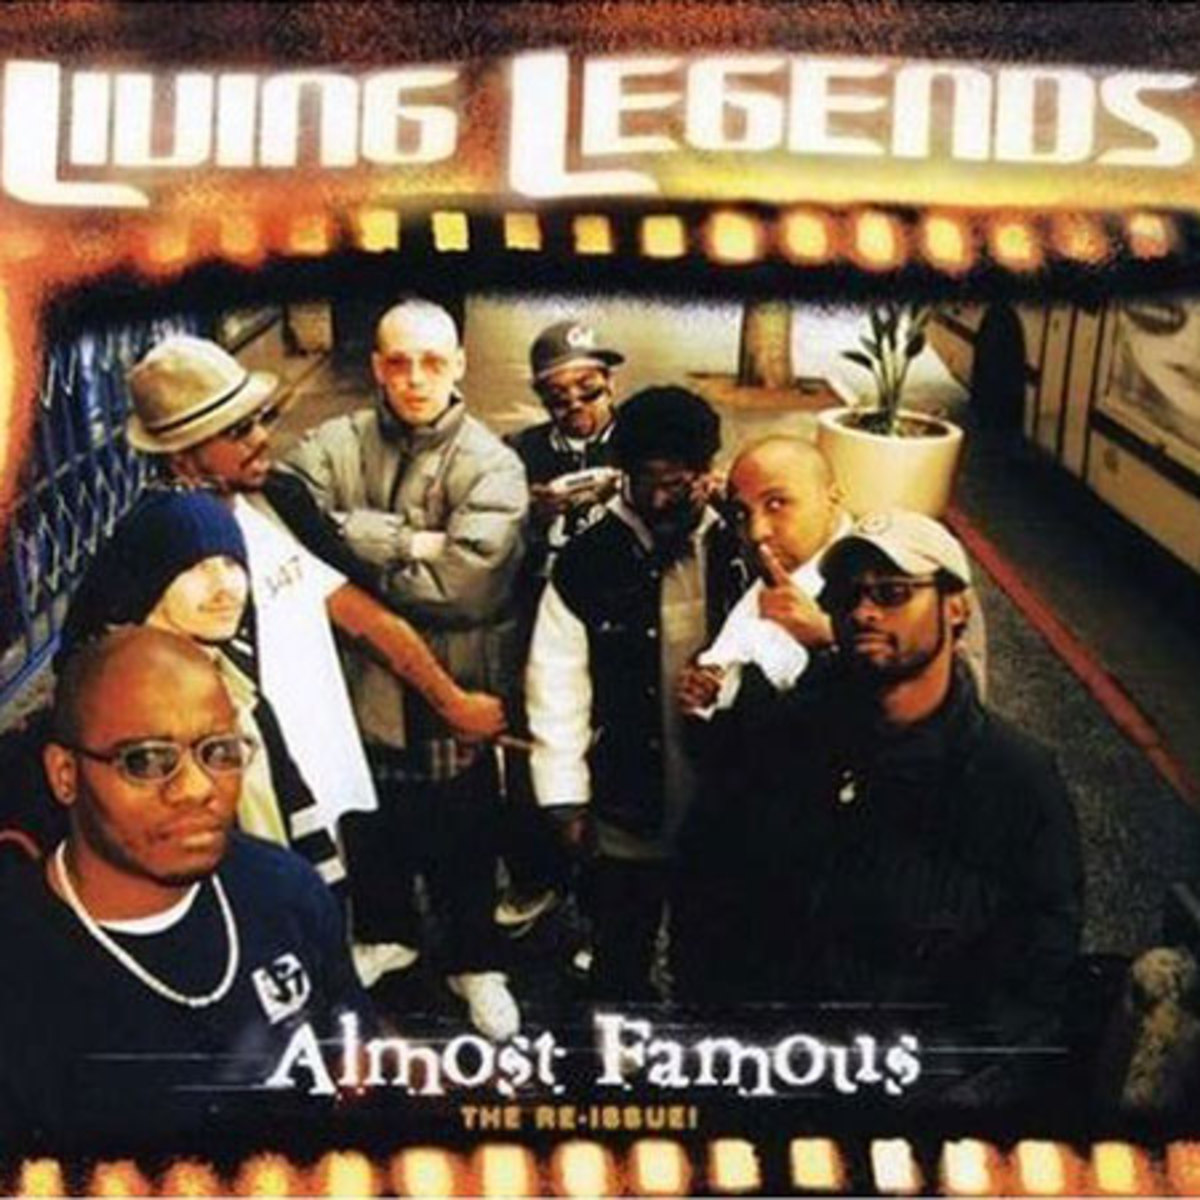 livinglegends-almostfamous.jpg